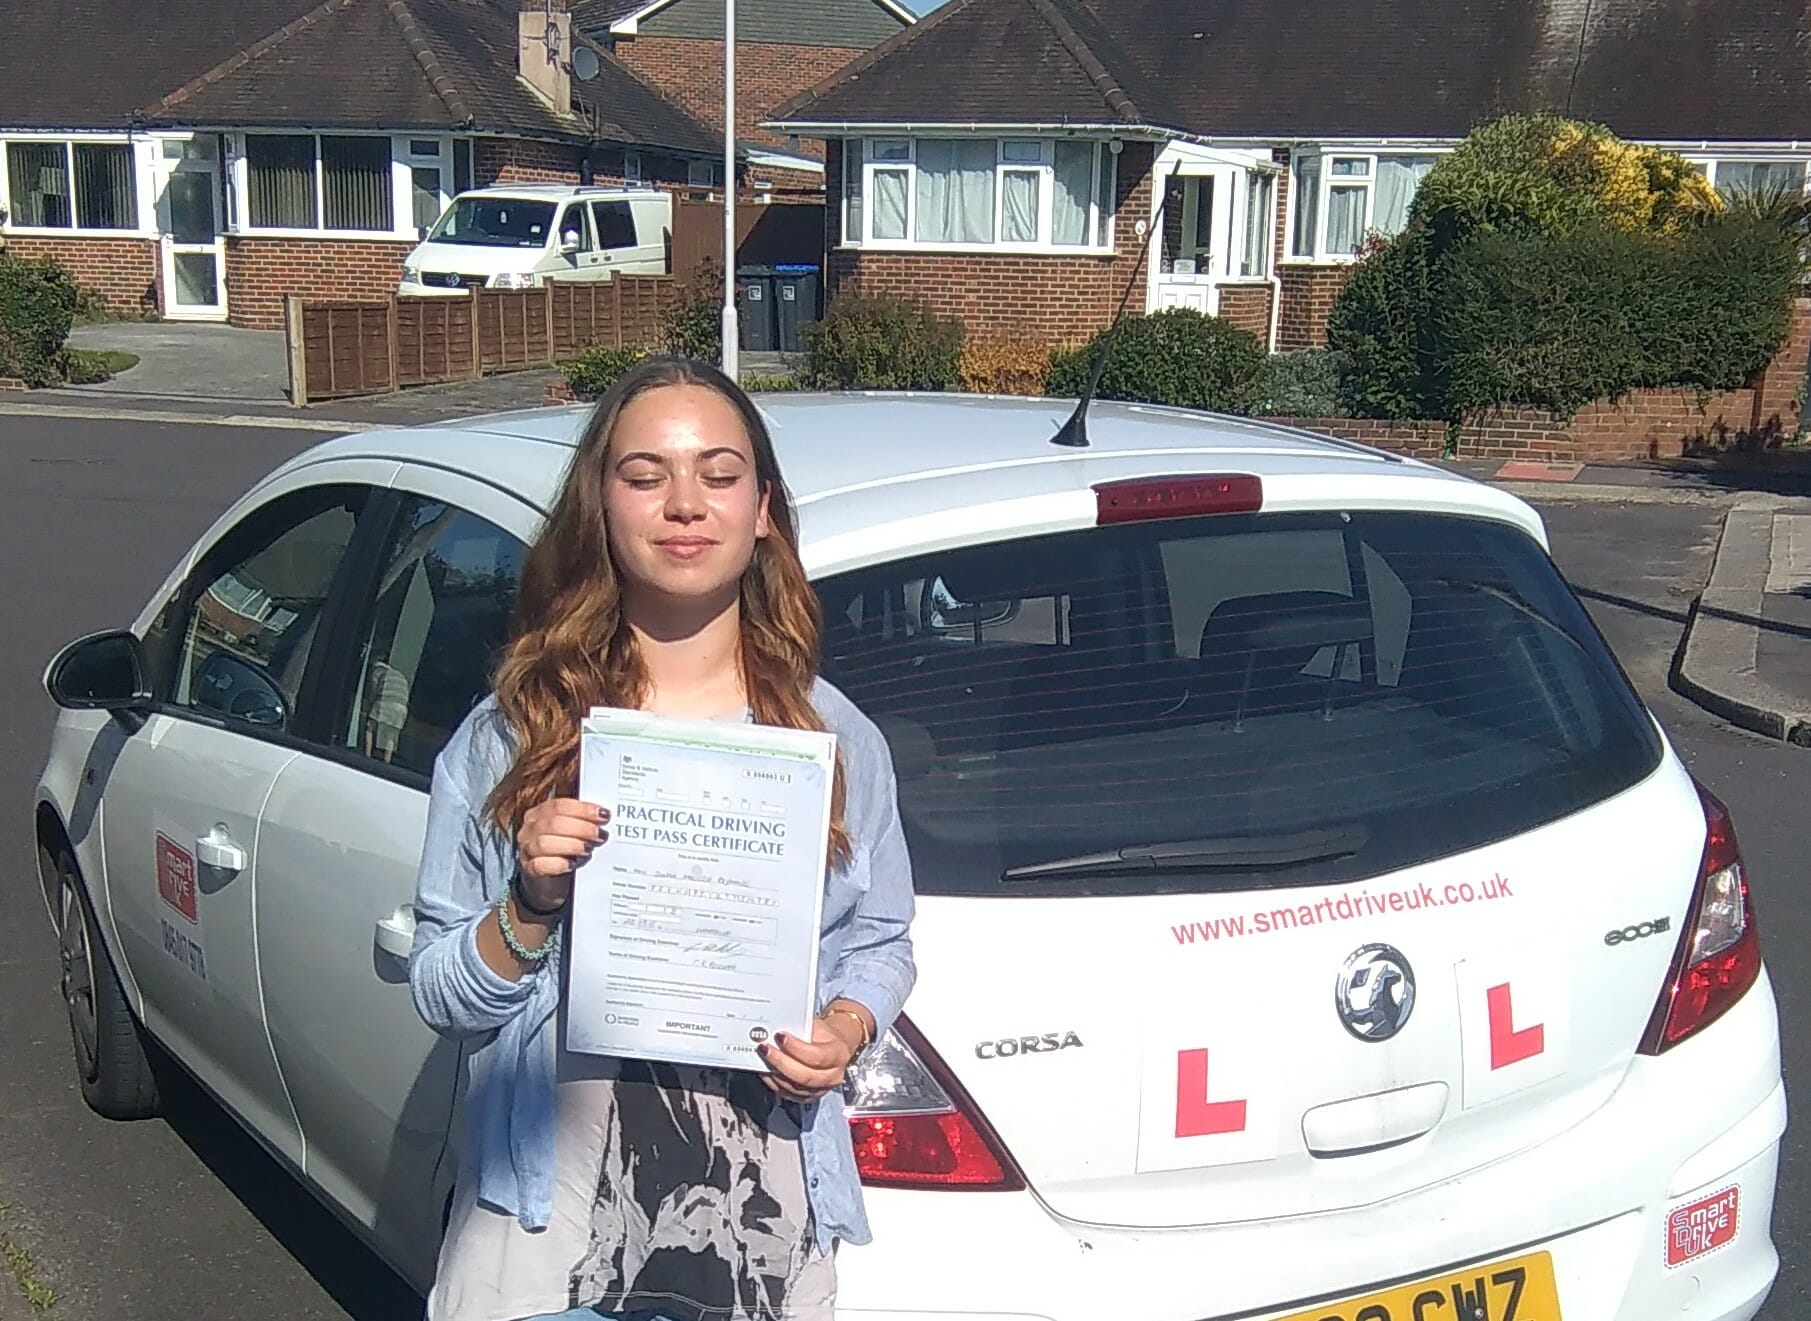 Congratulations to Sinem from Worthing